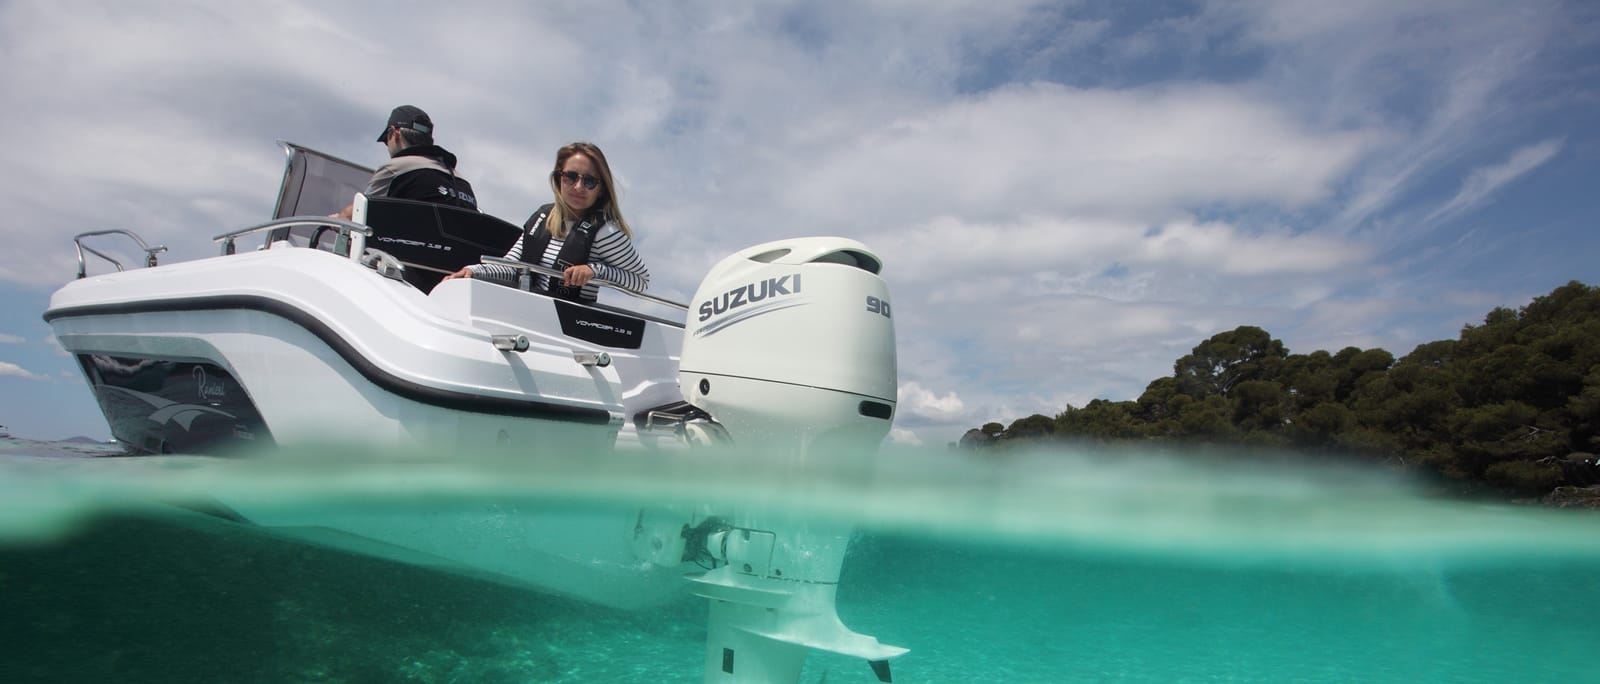 A Suzuki outboard motor on a boat in the water